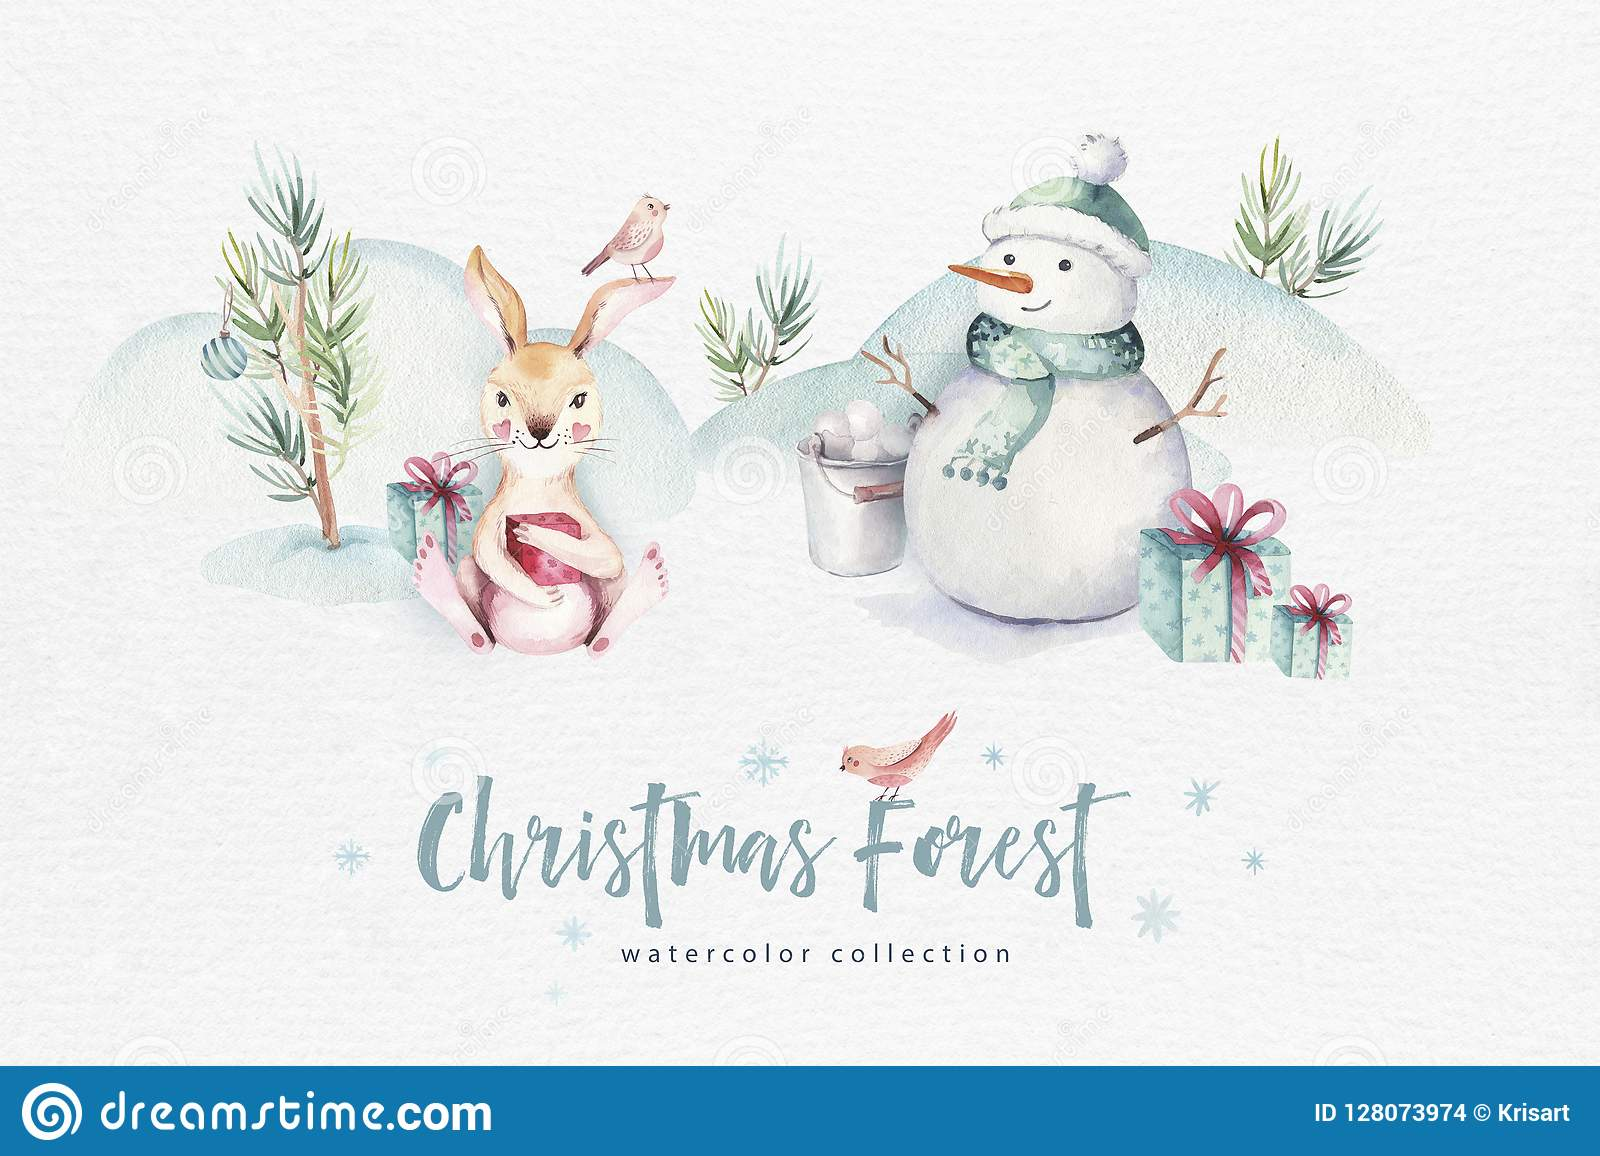 Merry Christmas Animals.Watercolor Merry Christmas Illustration With Snowman Holiday Cute